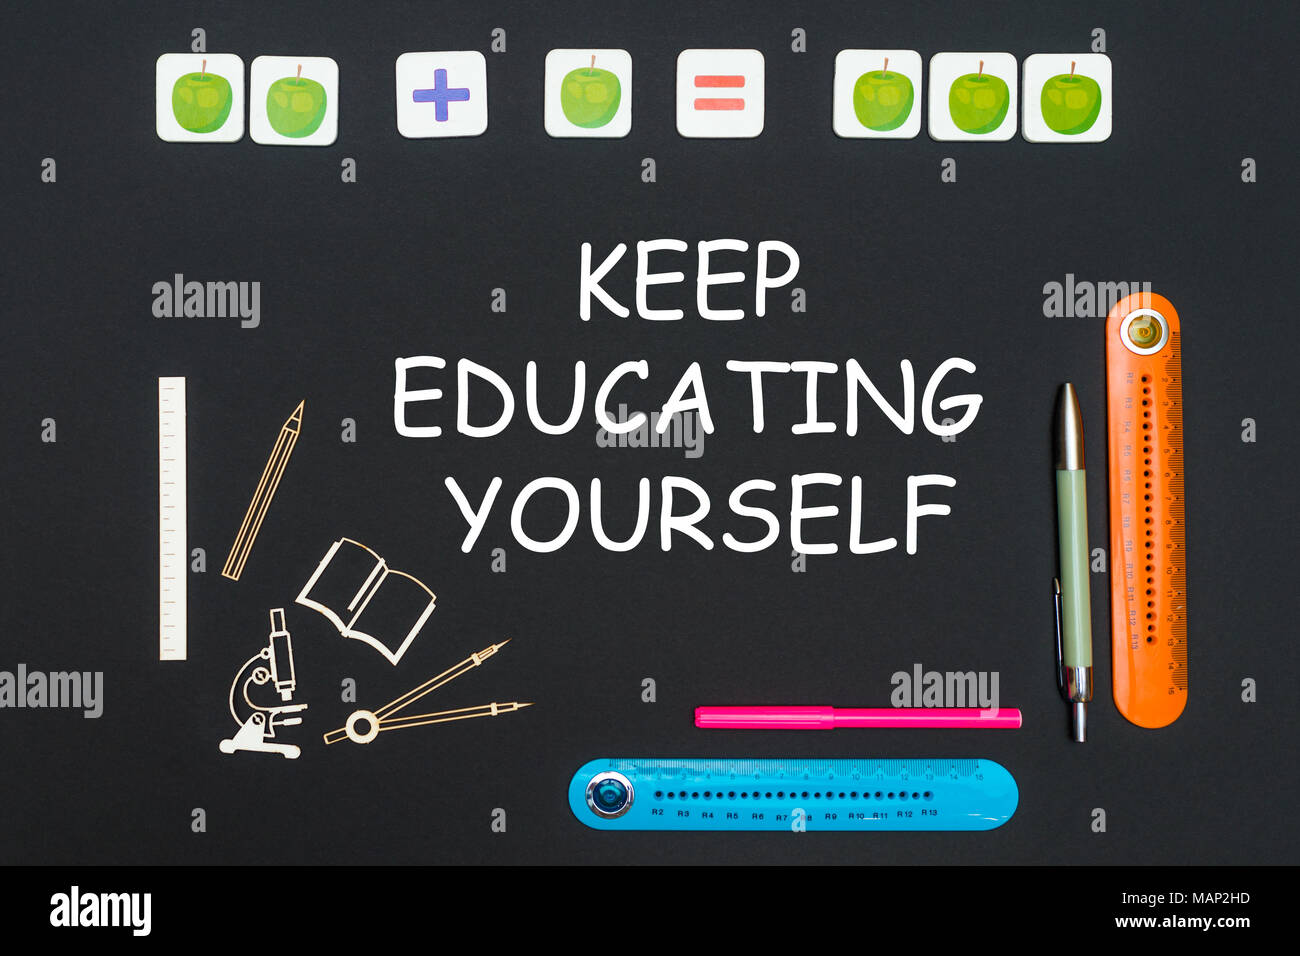 concept back to school, above stationery supplies and text keep educating yourself on black backboard - Stock Image